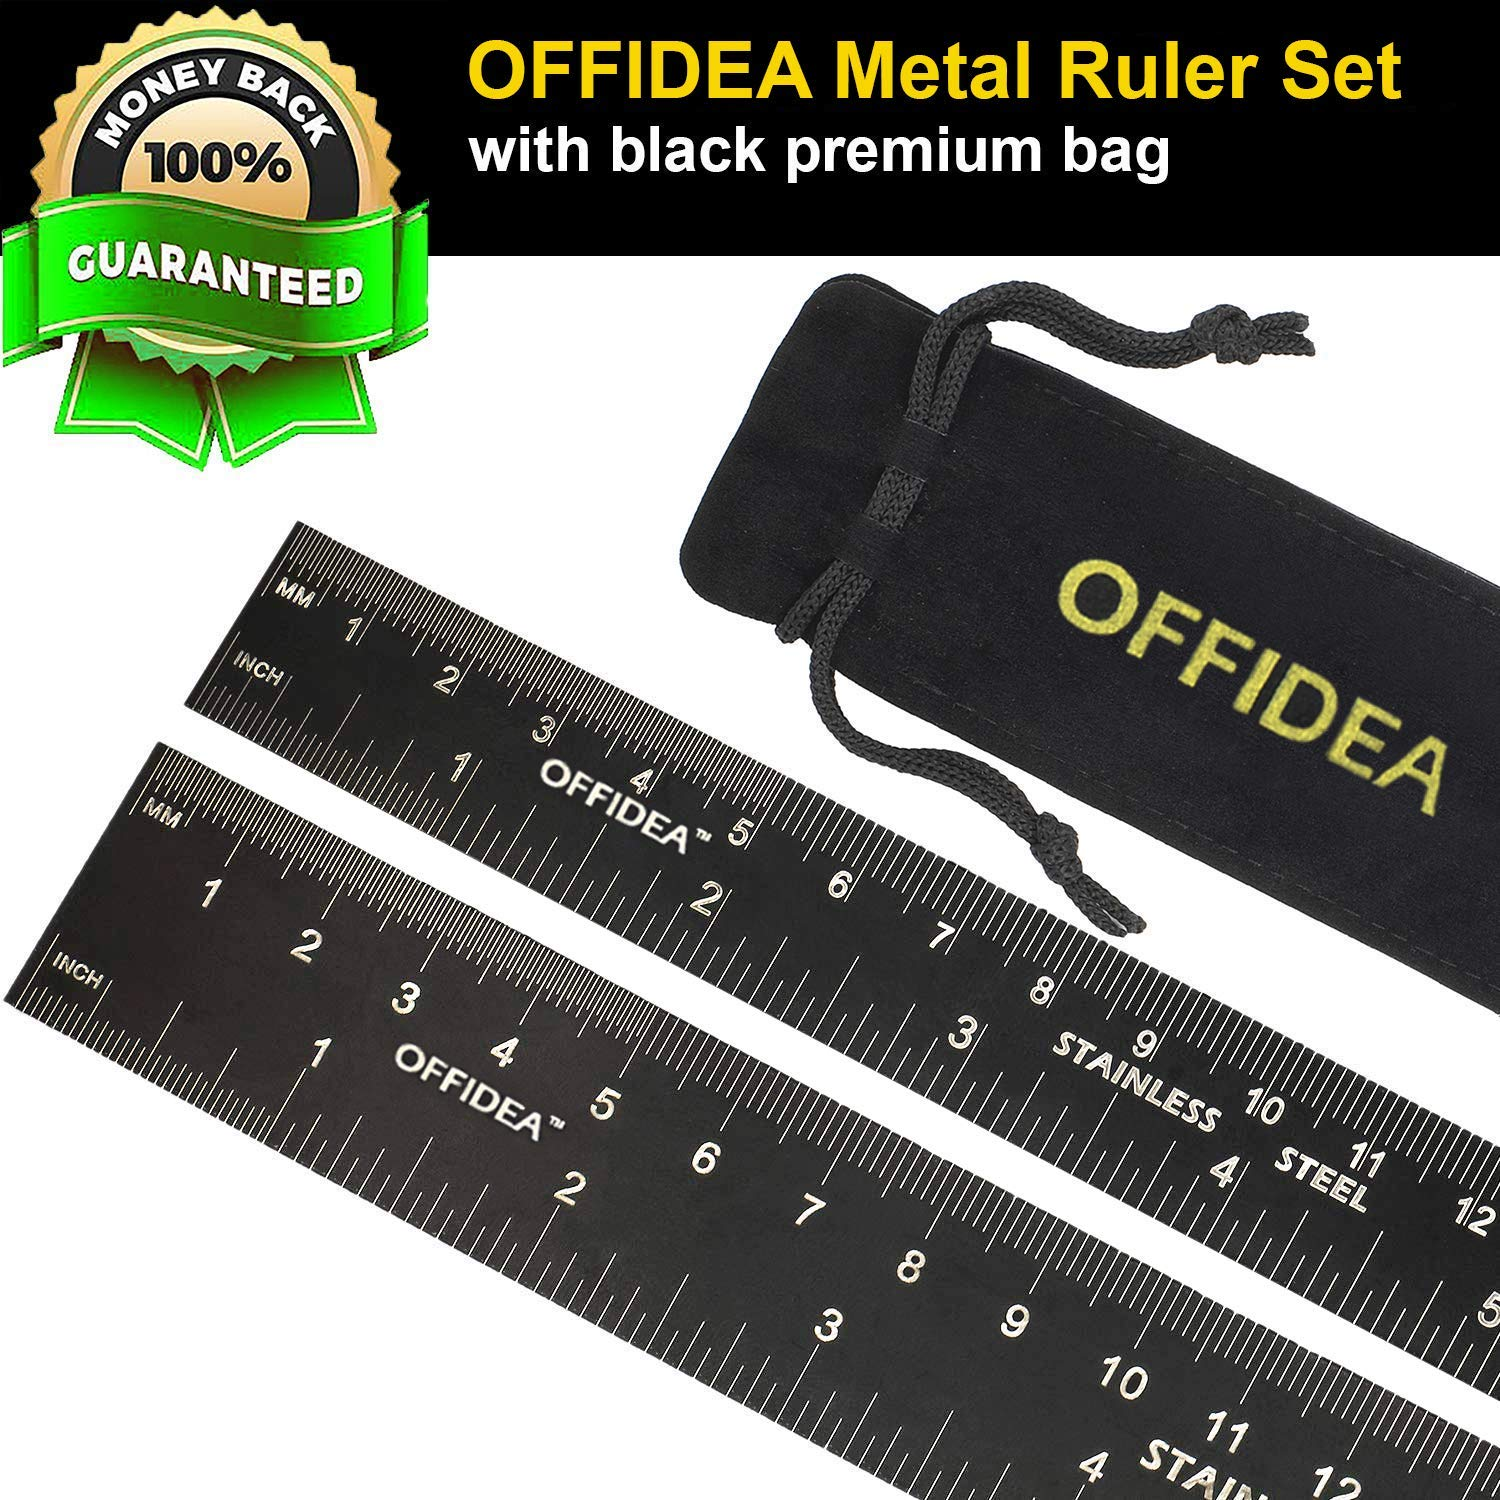 Offidea Steel Ruler 12 Inch and Steel Ruler 6 Inch Set Conversion Tables Metal Rulers with 1//16 and 1//32 Inch Imperial and 1mm and .5mm Metric High Contrast Scales Ideal for School and Office